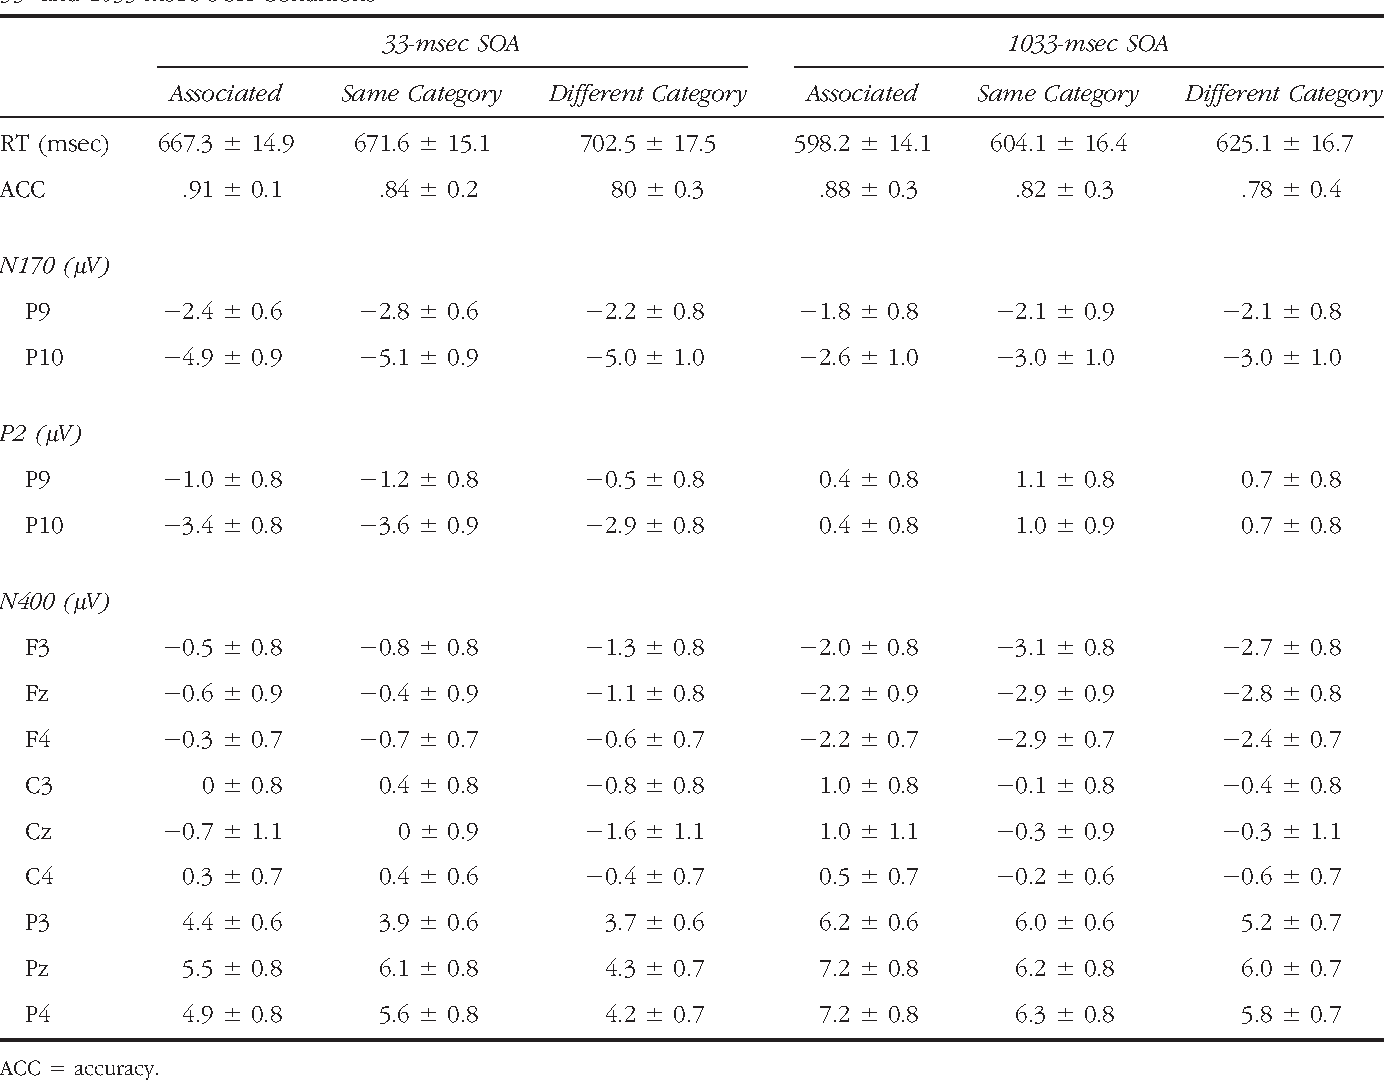 Table 1. Mean ± SEM Behavioral and Event-related Potential Measures for the Three Types of Prime/Target Relatedness in the 33- and 1033-msec SOA Conditions